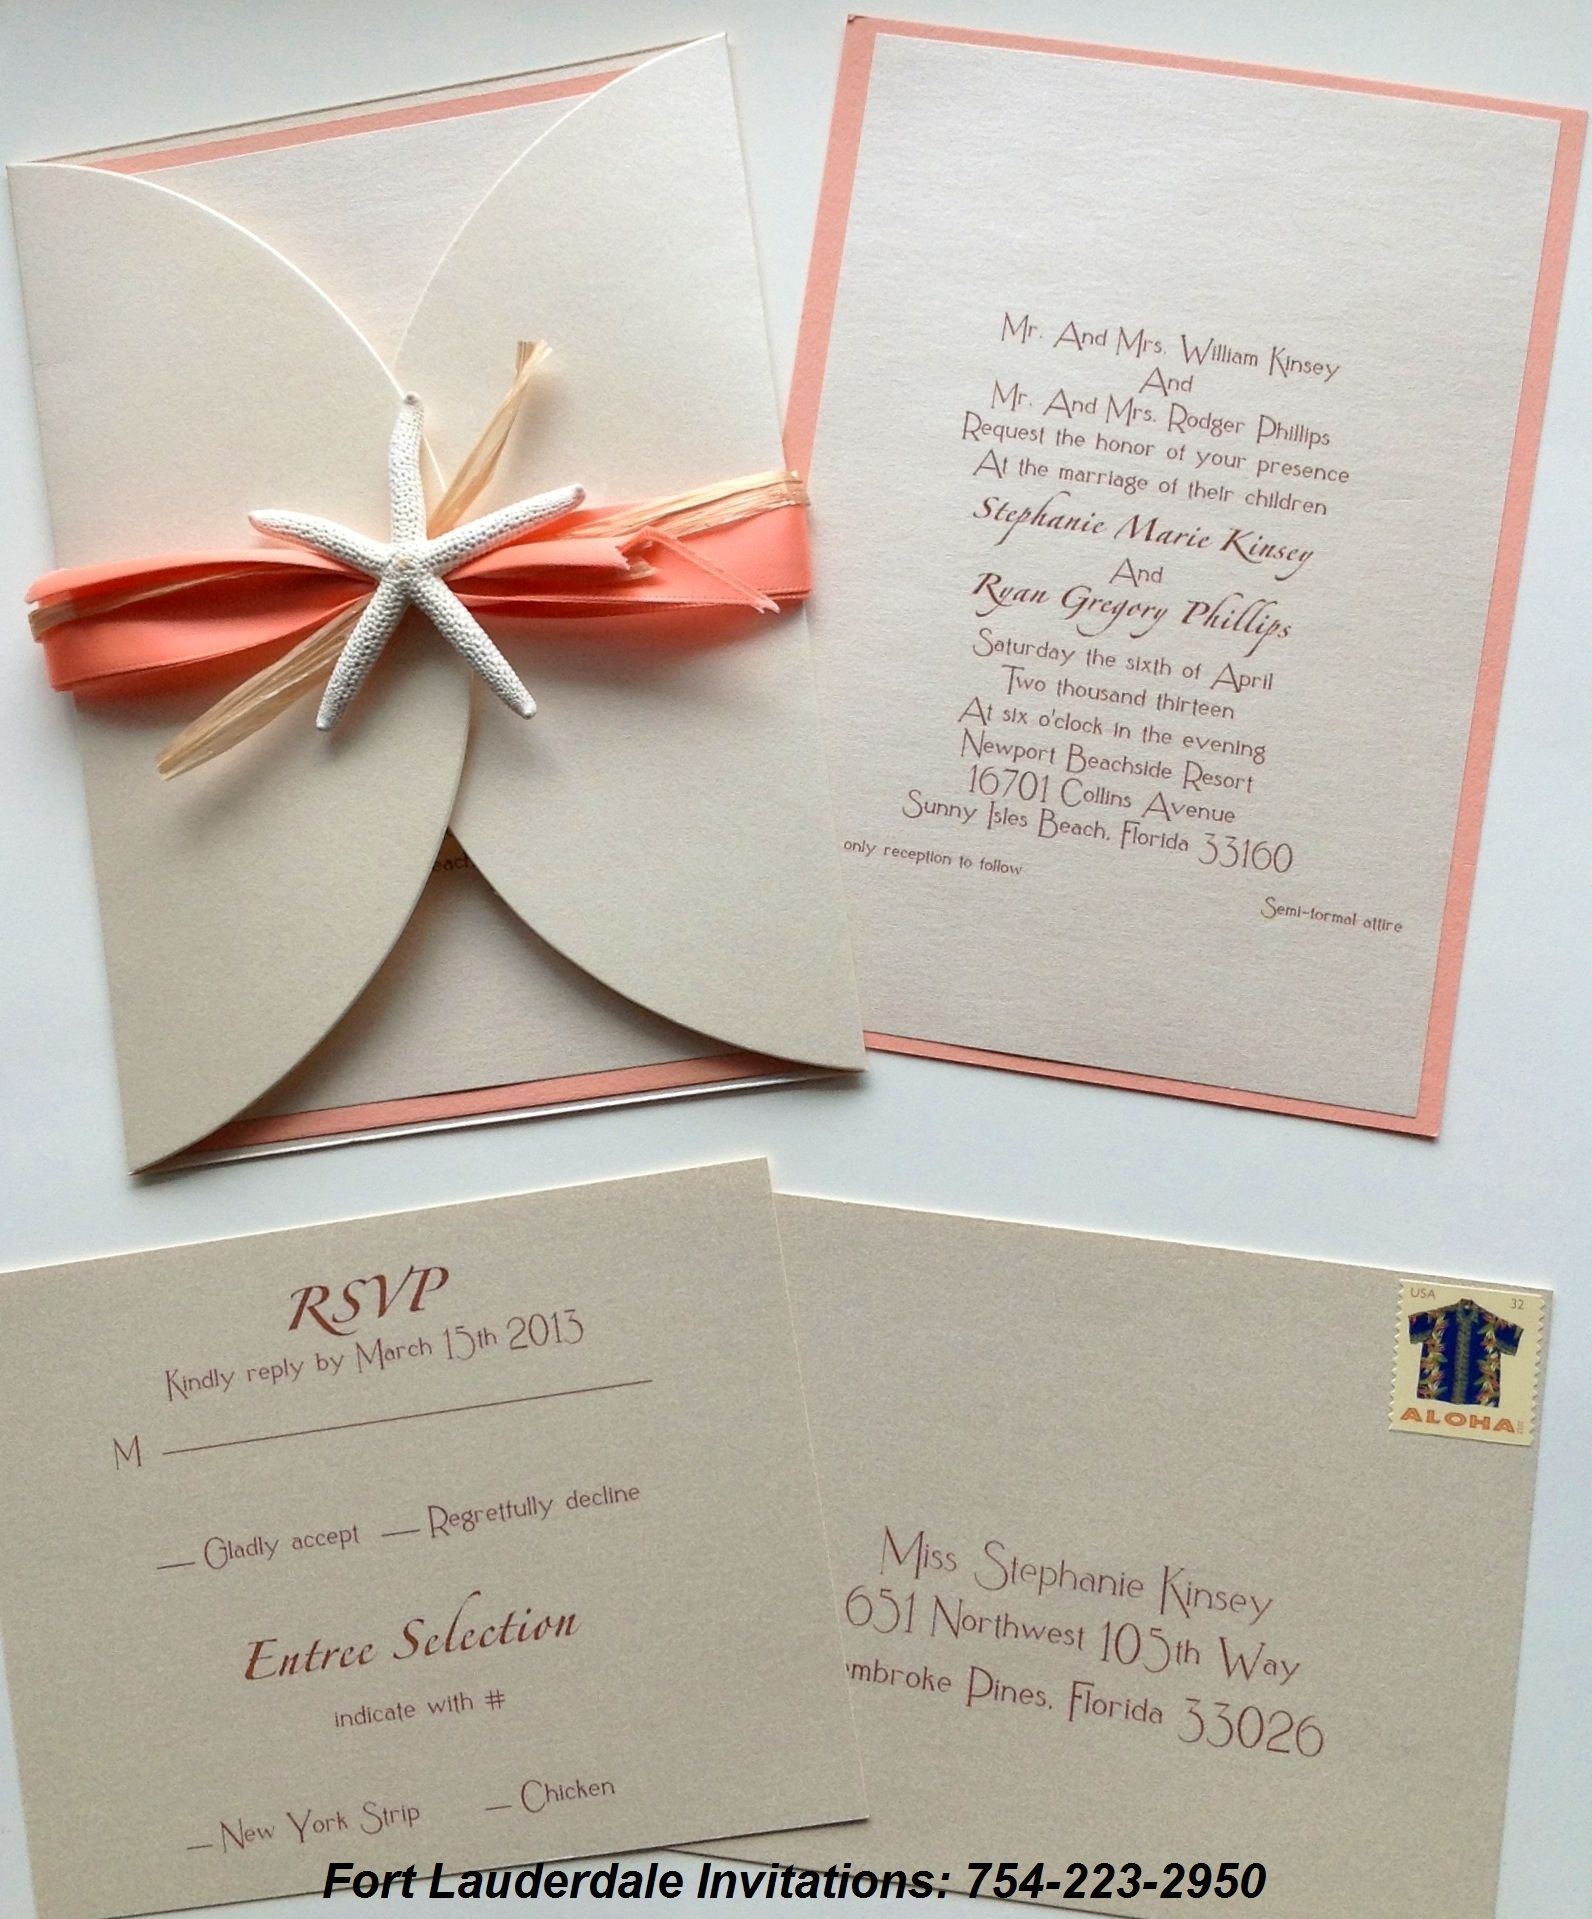 fort lauderdale invitations visit our website for ordering